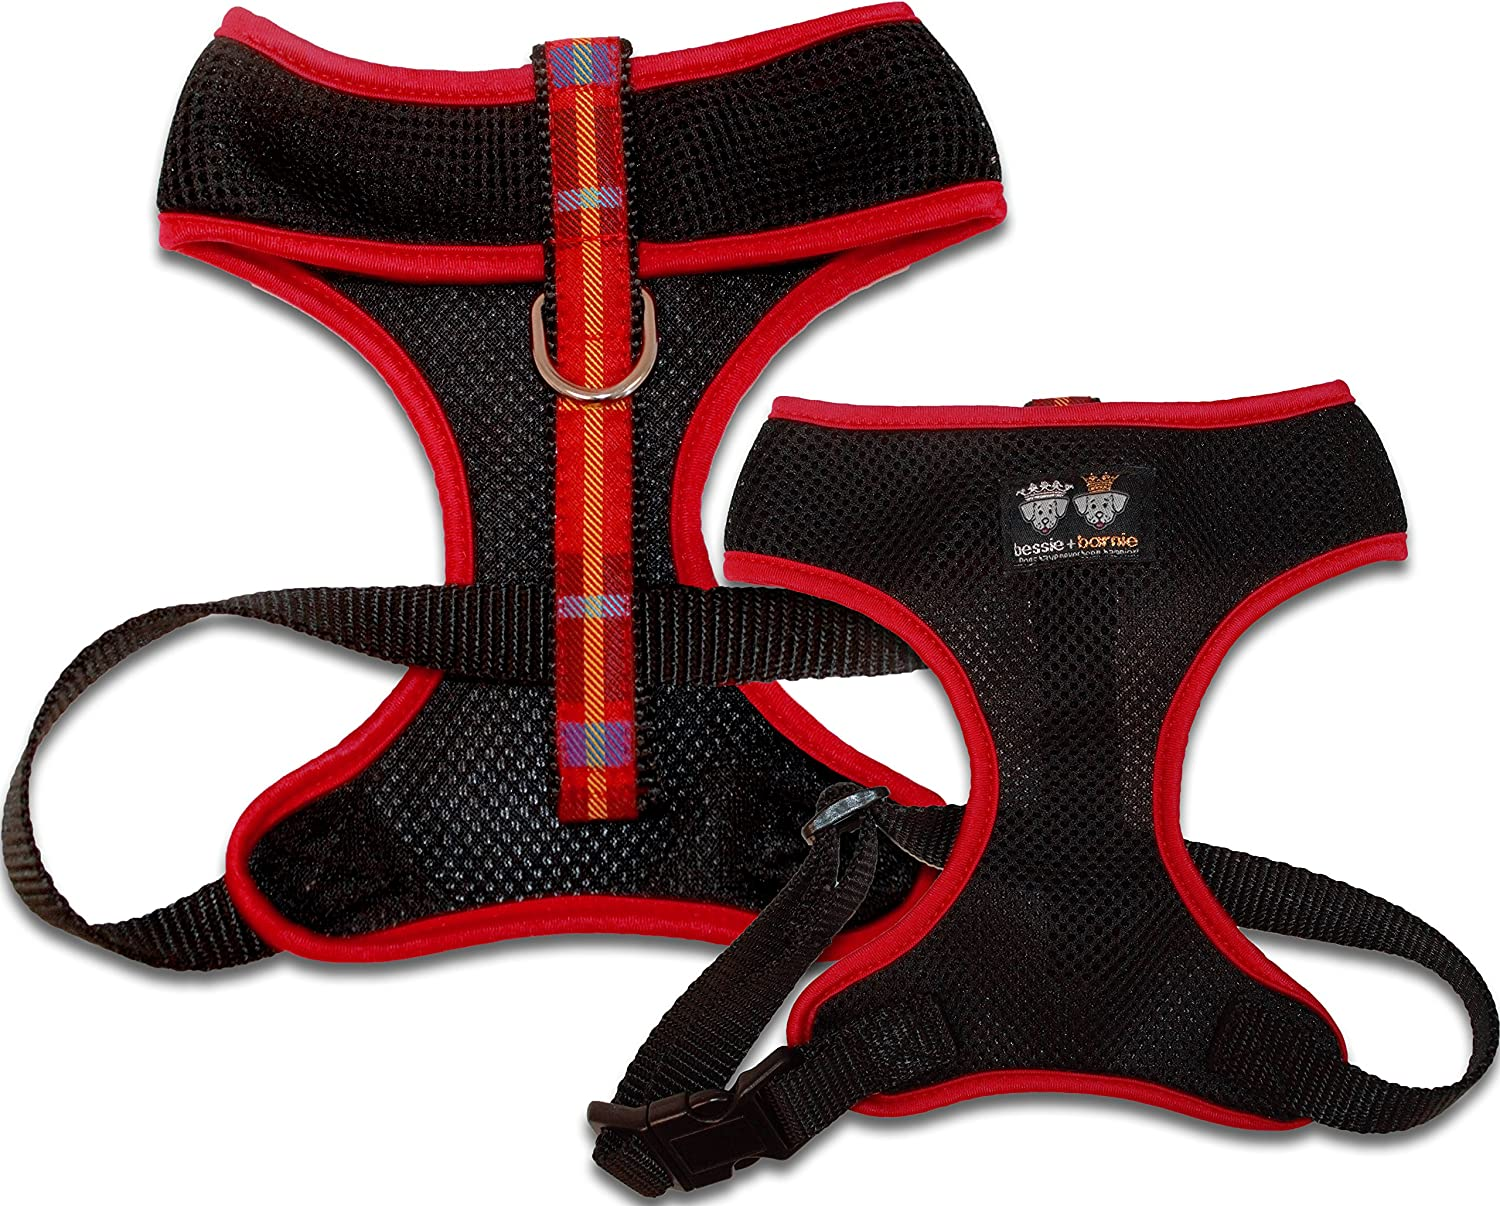 BESSIE Large-scale Portland Mall sale AND BARNIE Air Comfort Harness Crimson Pets Black for Pl